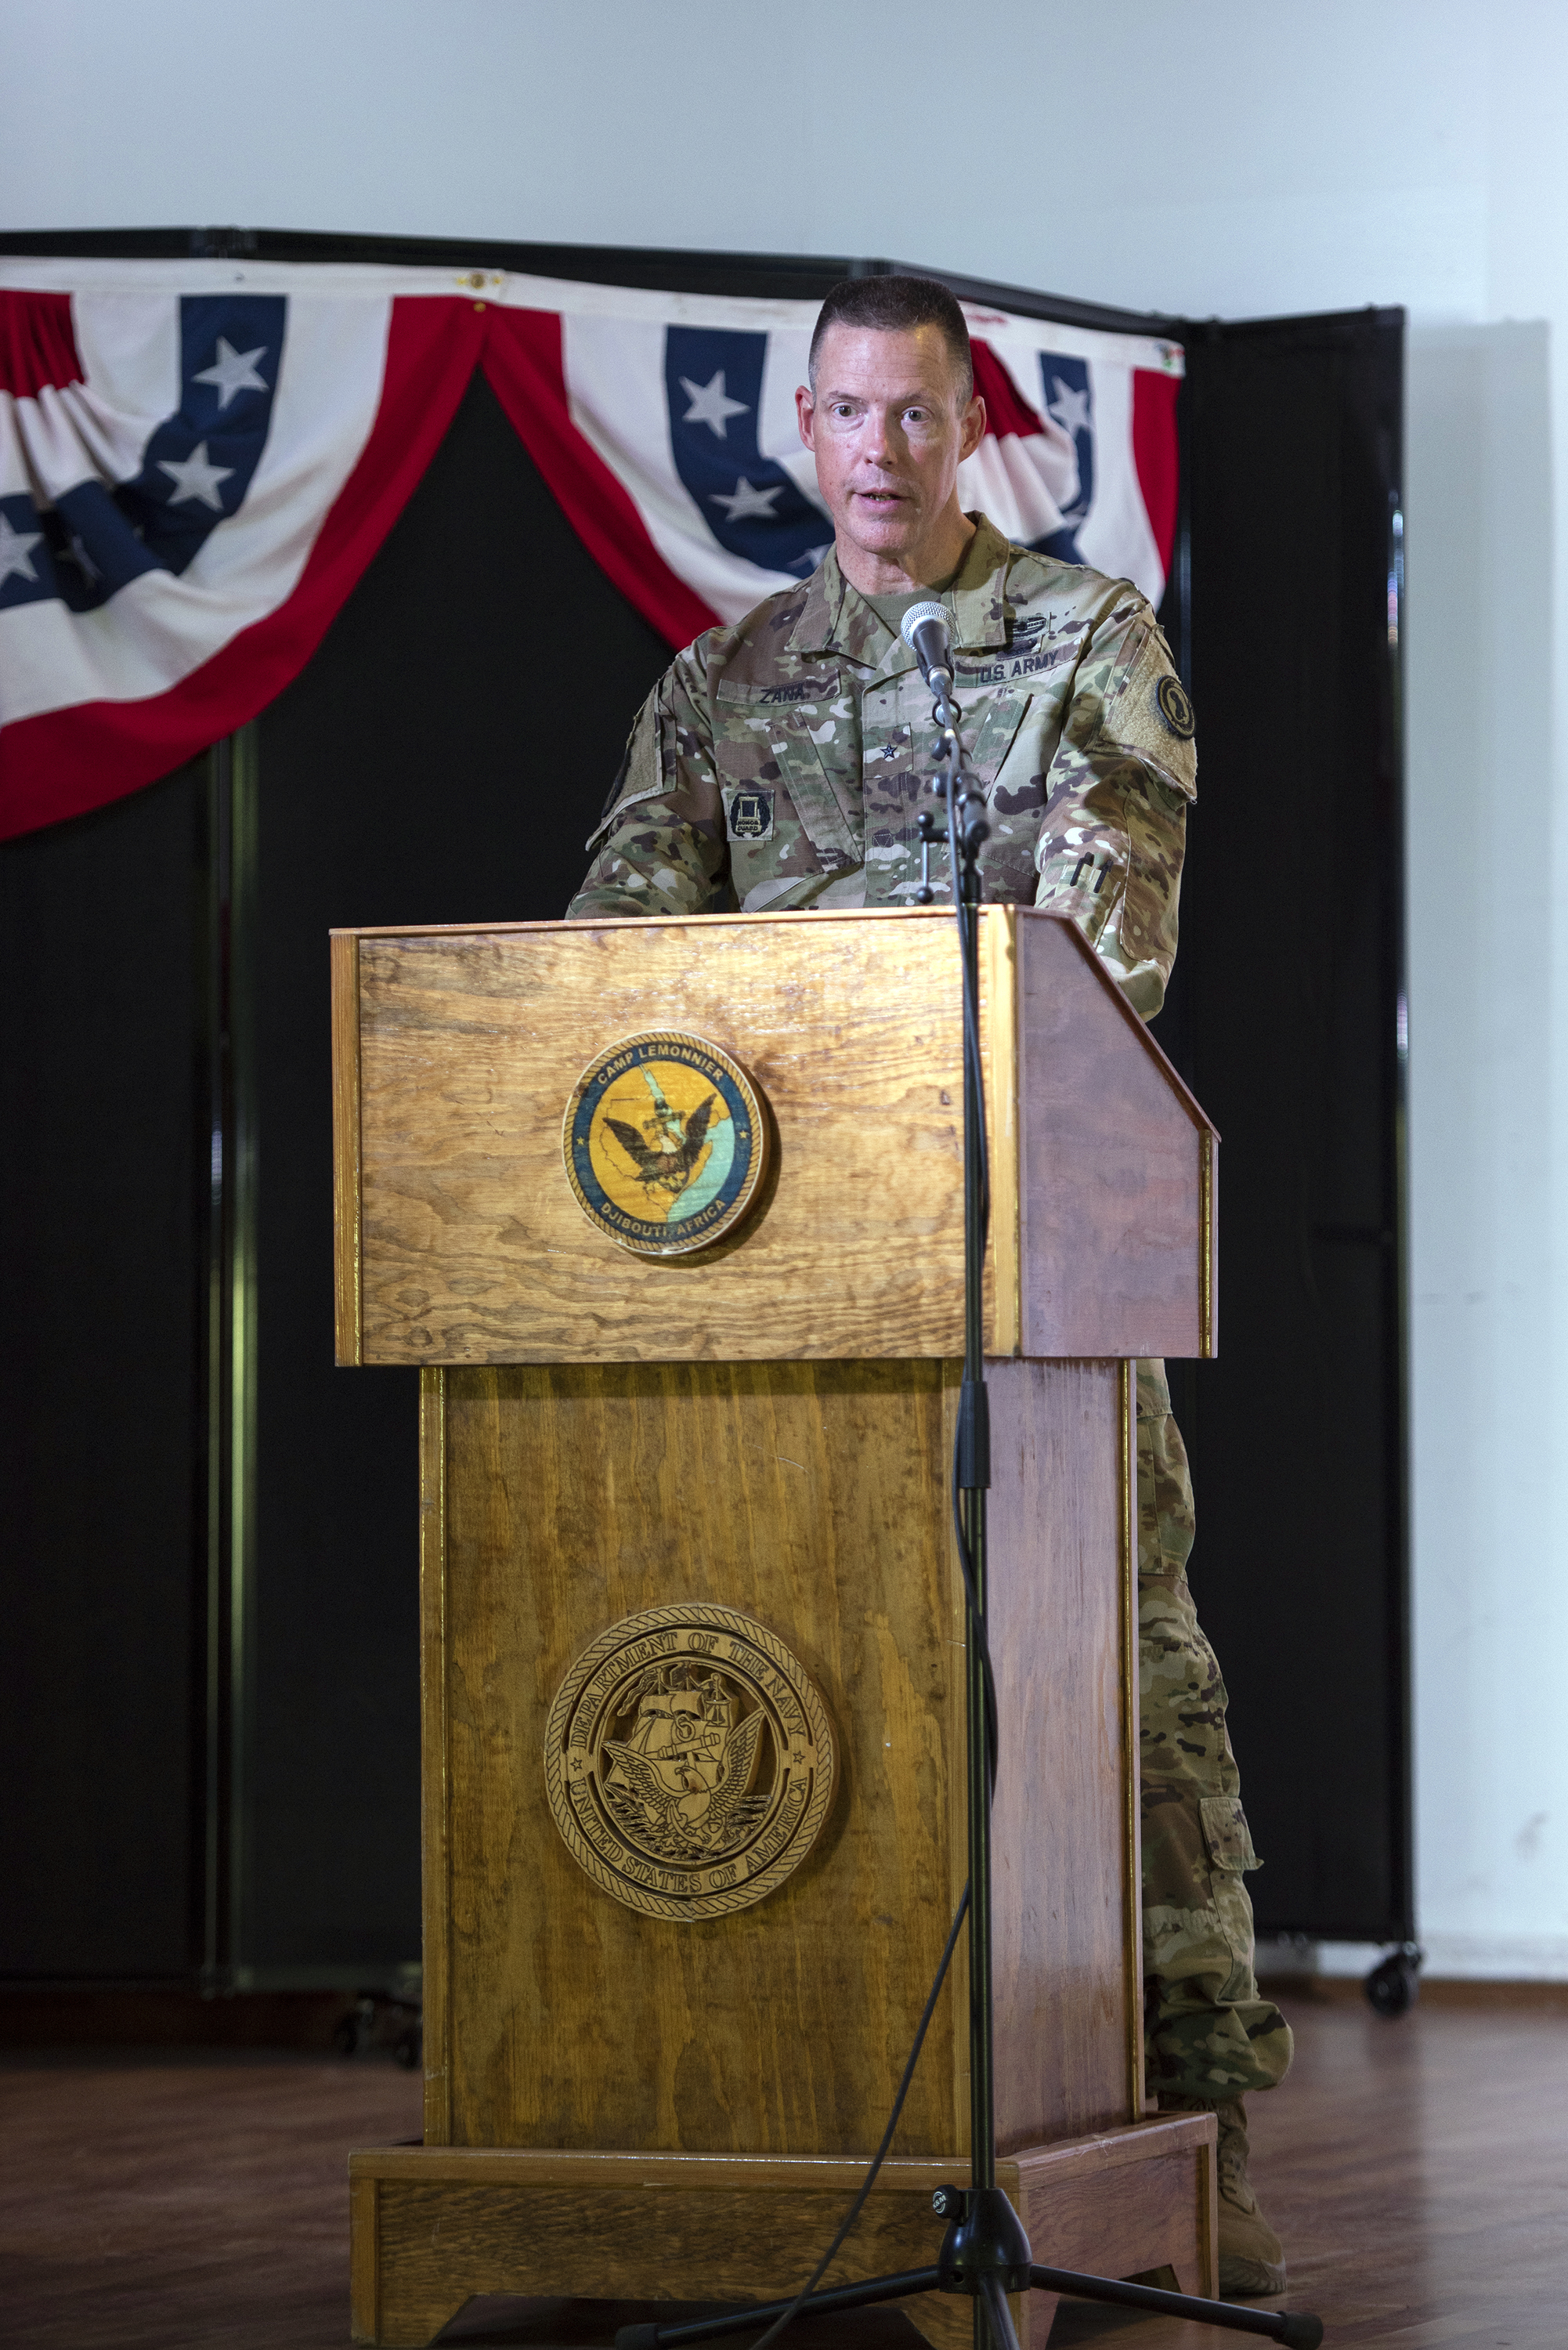 U.S. Army Brig. Gen. William Zana, outgoing commander, Combined Joint Task Force Horn of Africa, addresses distinguished guests and service members during a change of command ceremony on Camp Lemonnier, Djibouti, June 14, 2018. Zana, the fifteenth leader to command CJTF-HOA, will continue to serve with the task force, resuming his previous position as deputy commander. (U.S. Air National Guard photo by Master Sgt. Sarah Mattison)